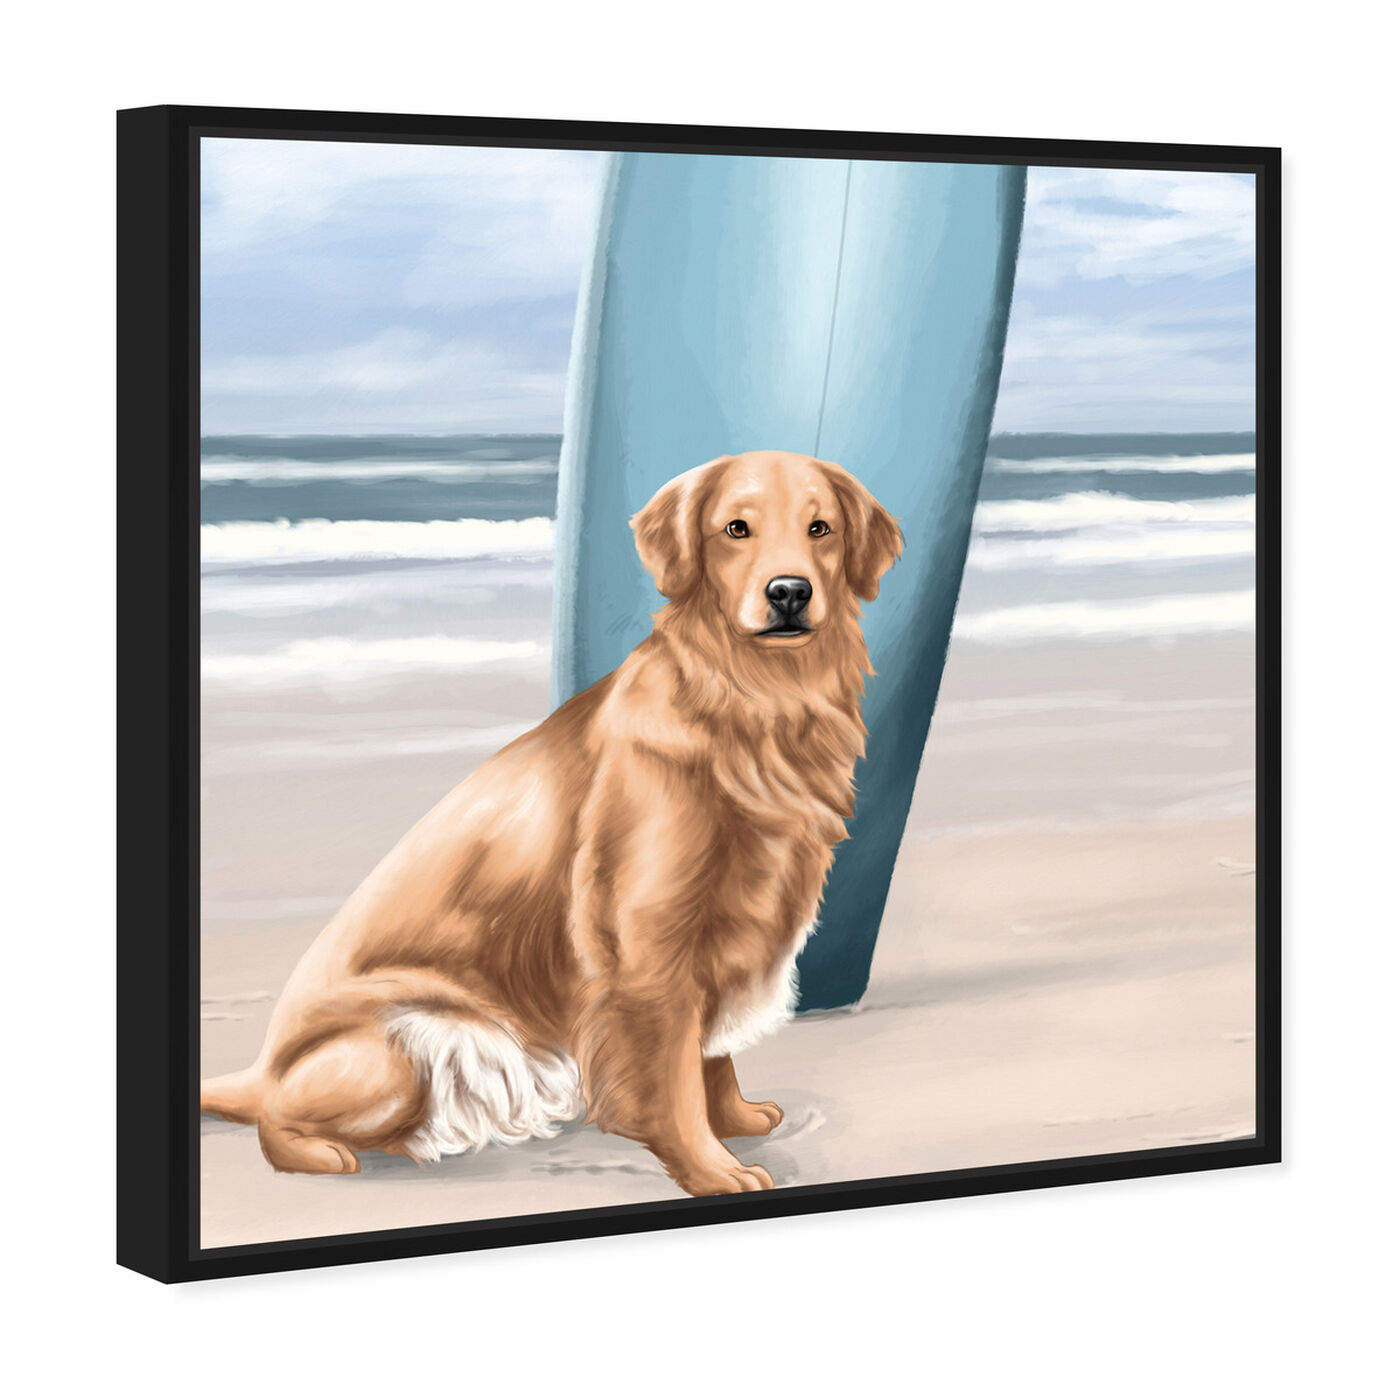 Angled view of Surfer Golden Retriever featuring animals and dogs and puppies art.